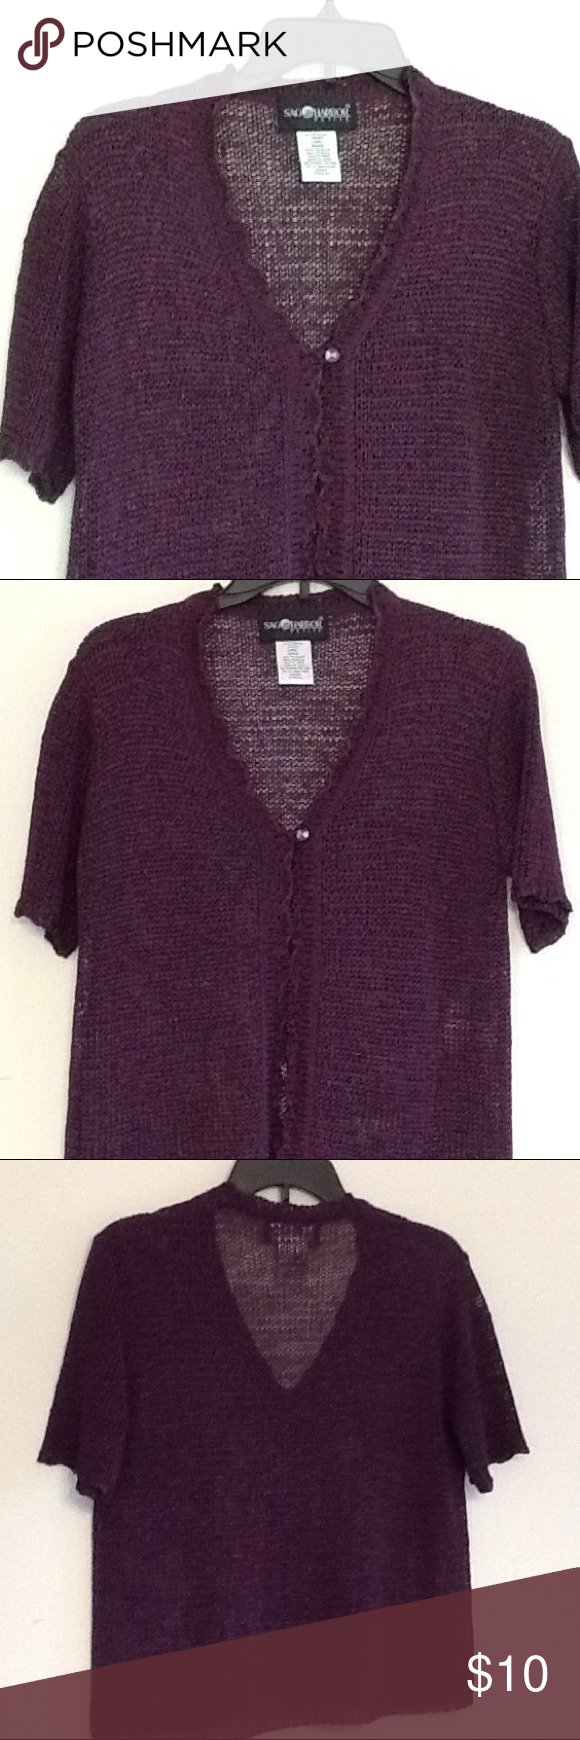 SAG HARBOR. Crocheted cardigan sweater SAG HARBOR. Crocheted short sleeve cardigan sweater. One button closure, like new, never worn but tags were removed. Eggplant color. Sag Harbor Sweaters Cardigans